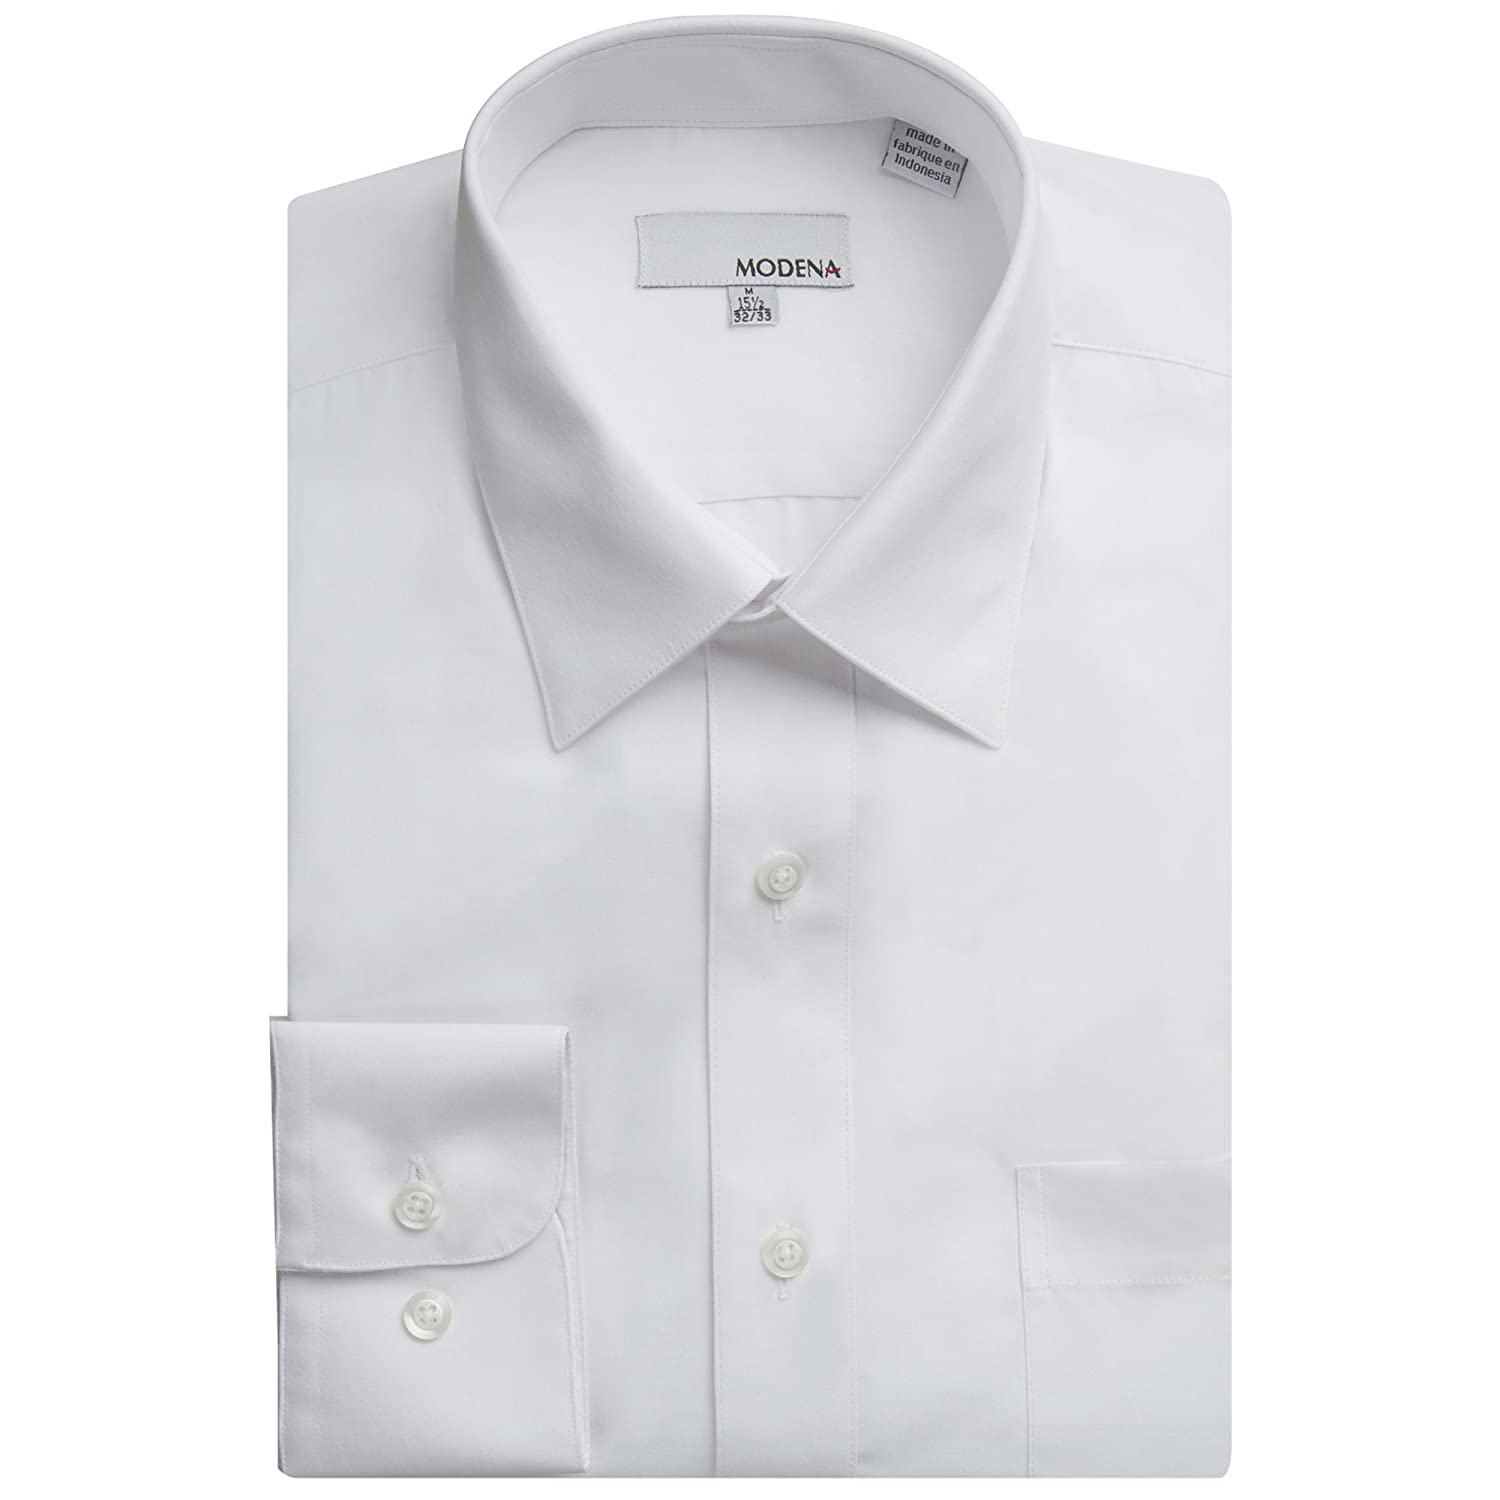 Colors Modena Men/'s Regular /& Contemporary Fit Long Sleeve Solid Dress Shirt All Sizes Slim